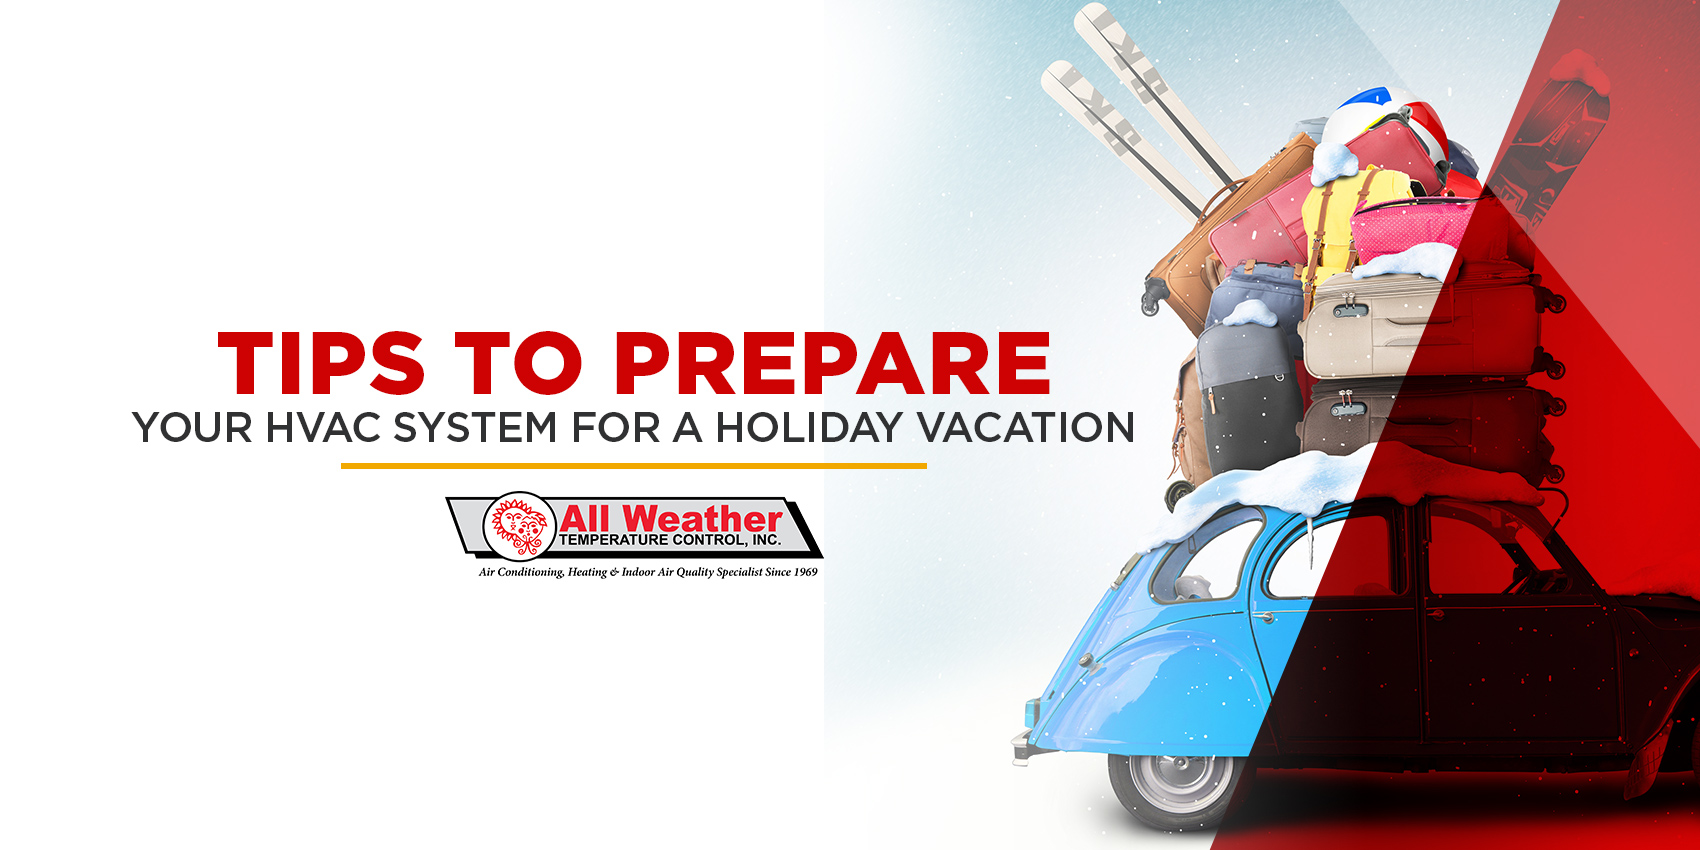 Tips to Prepare Your HVAC System for a Holiday Vacation